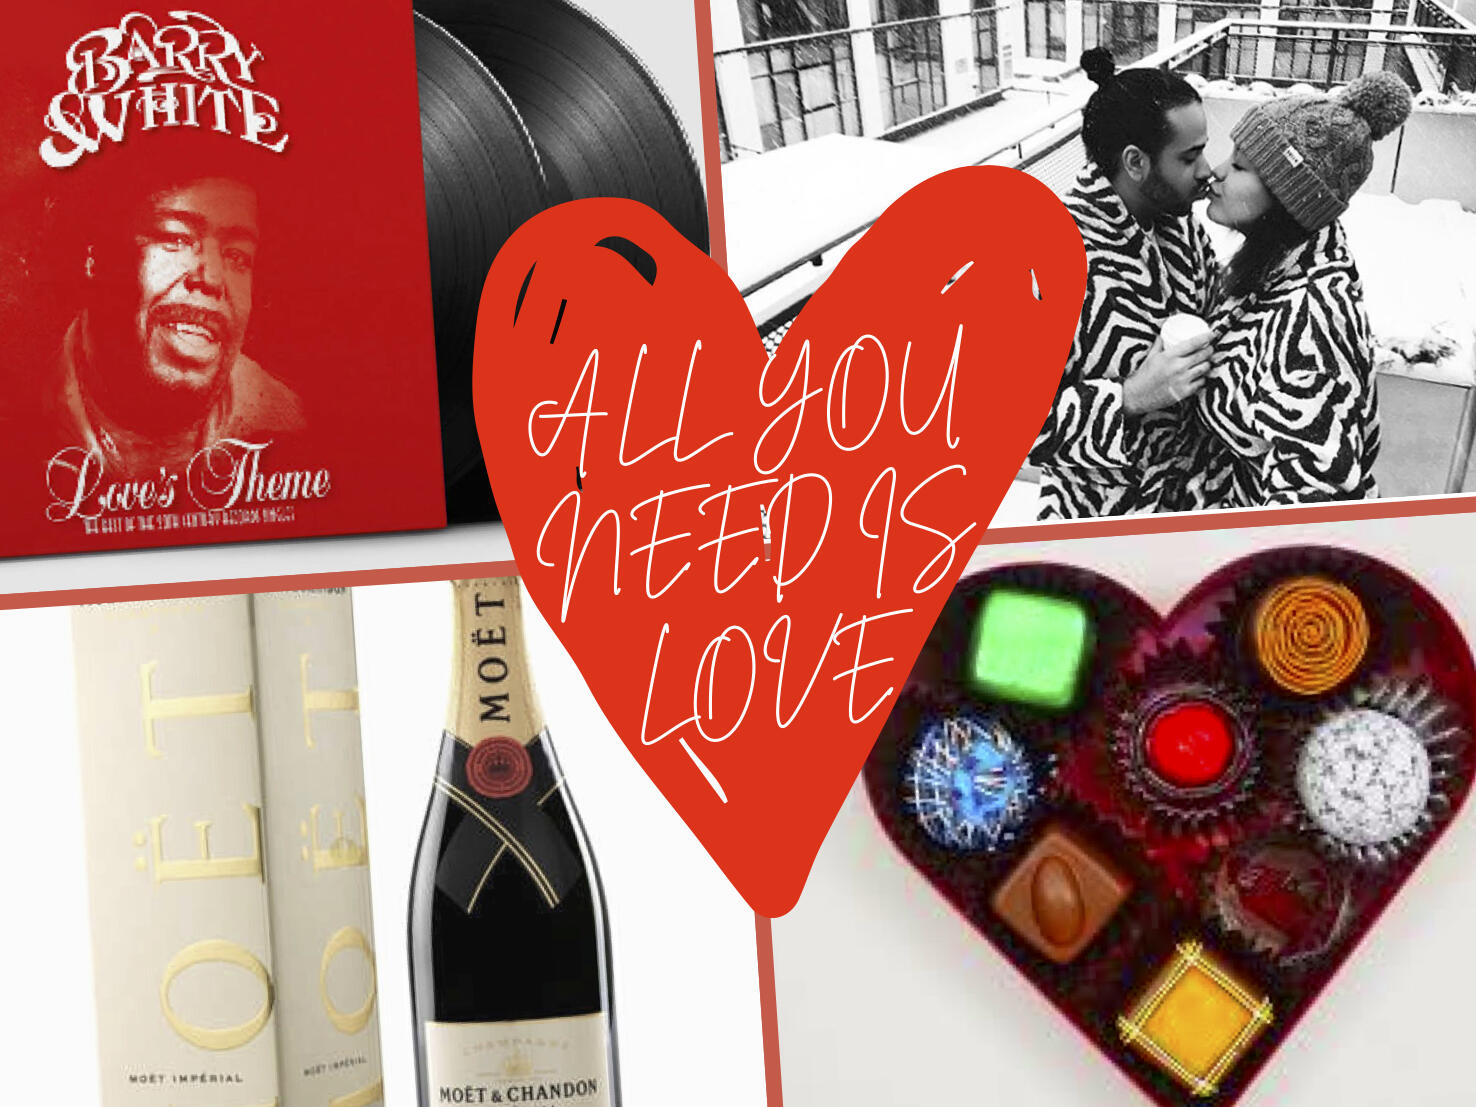 Collage of Valentine's Day images like candy & champagne